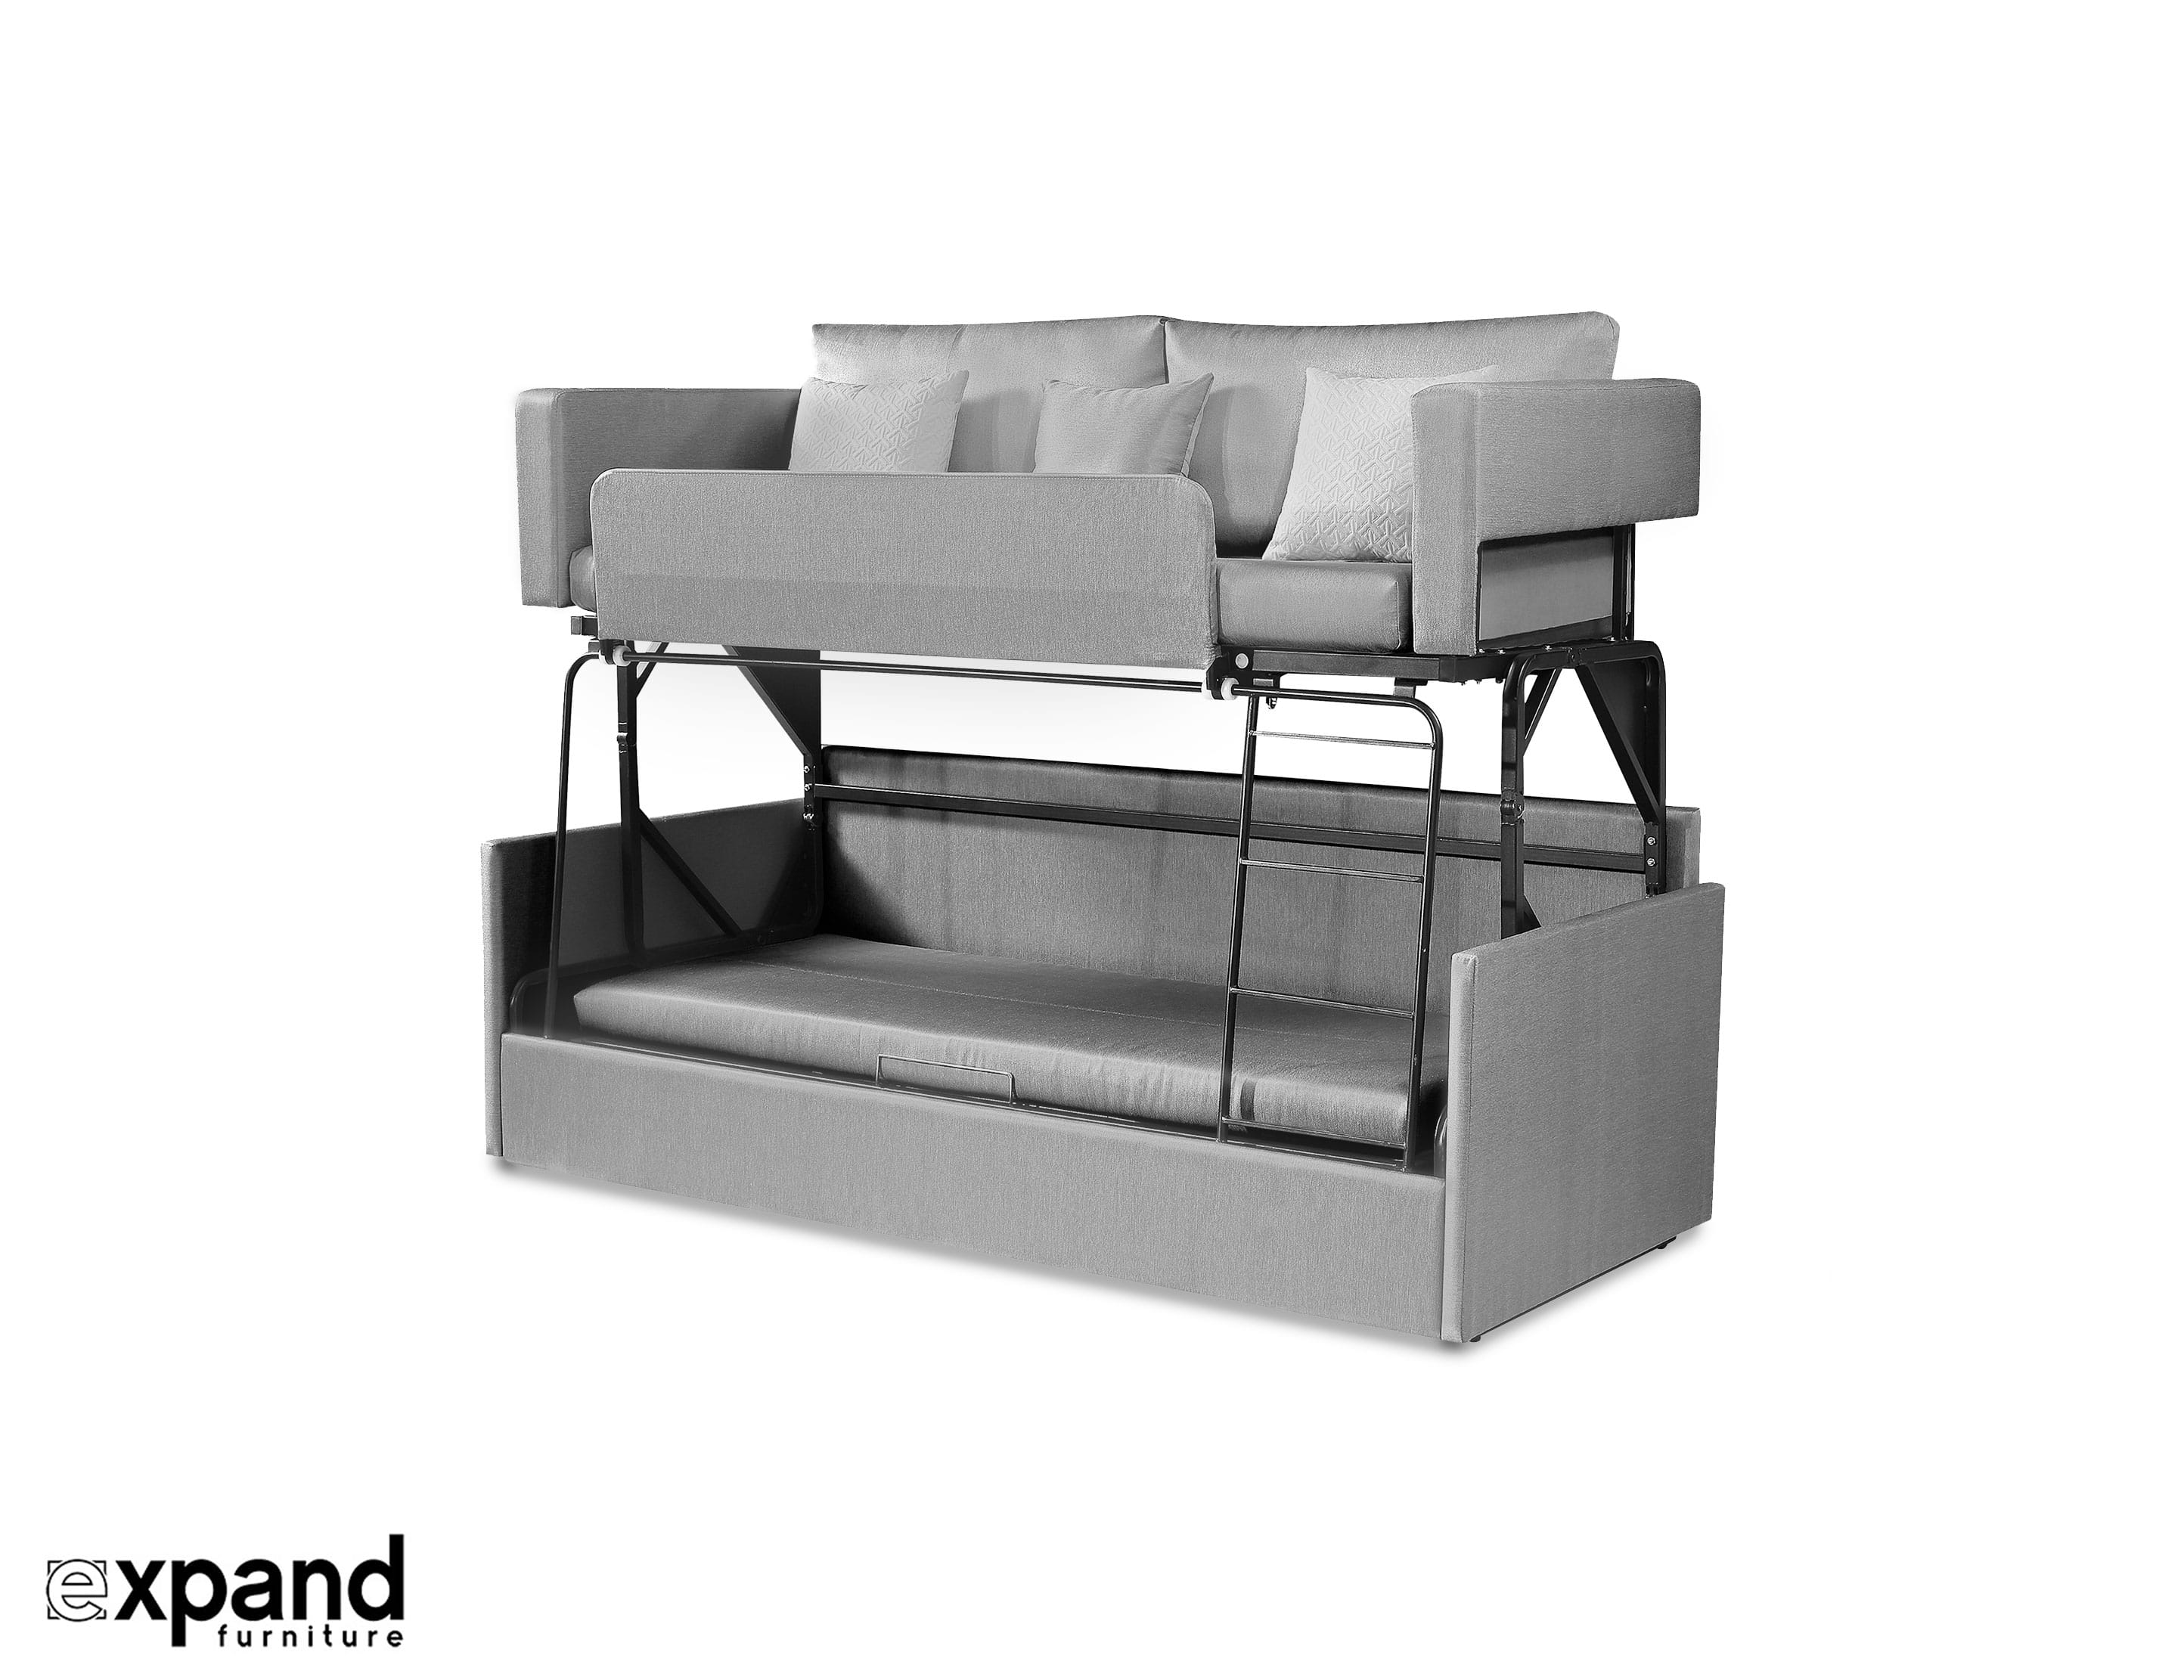 transforming sofa bed avalon 2 piece sectional bunk doc hiconsumption thesofa